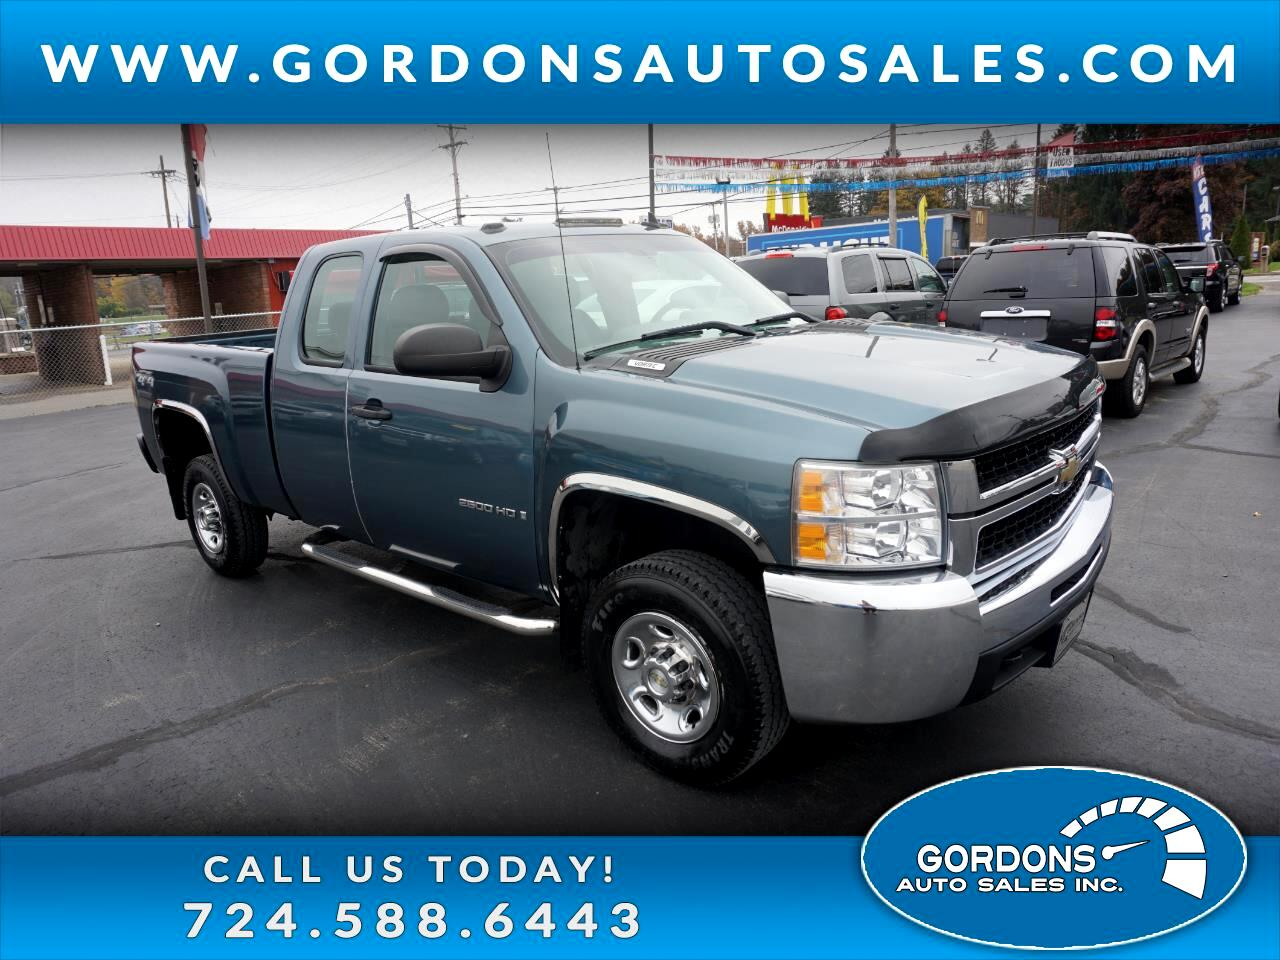 2008 Chevrolet Silverado 2500HD Ext Cab 143.5